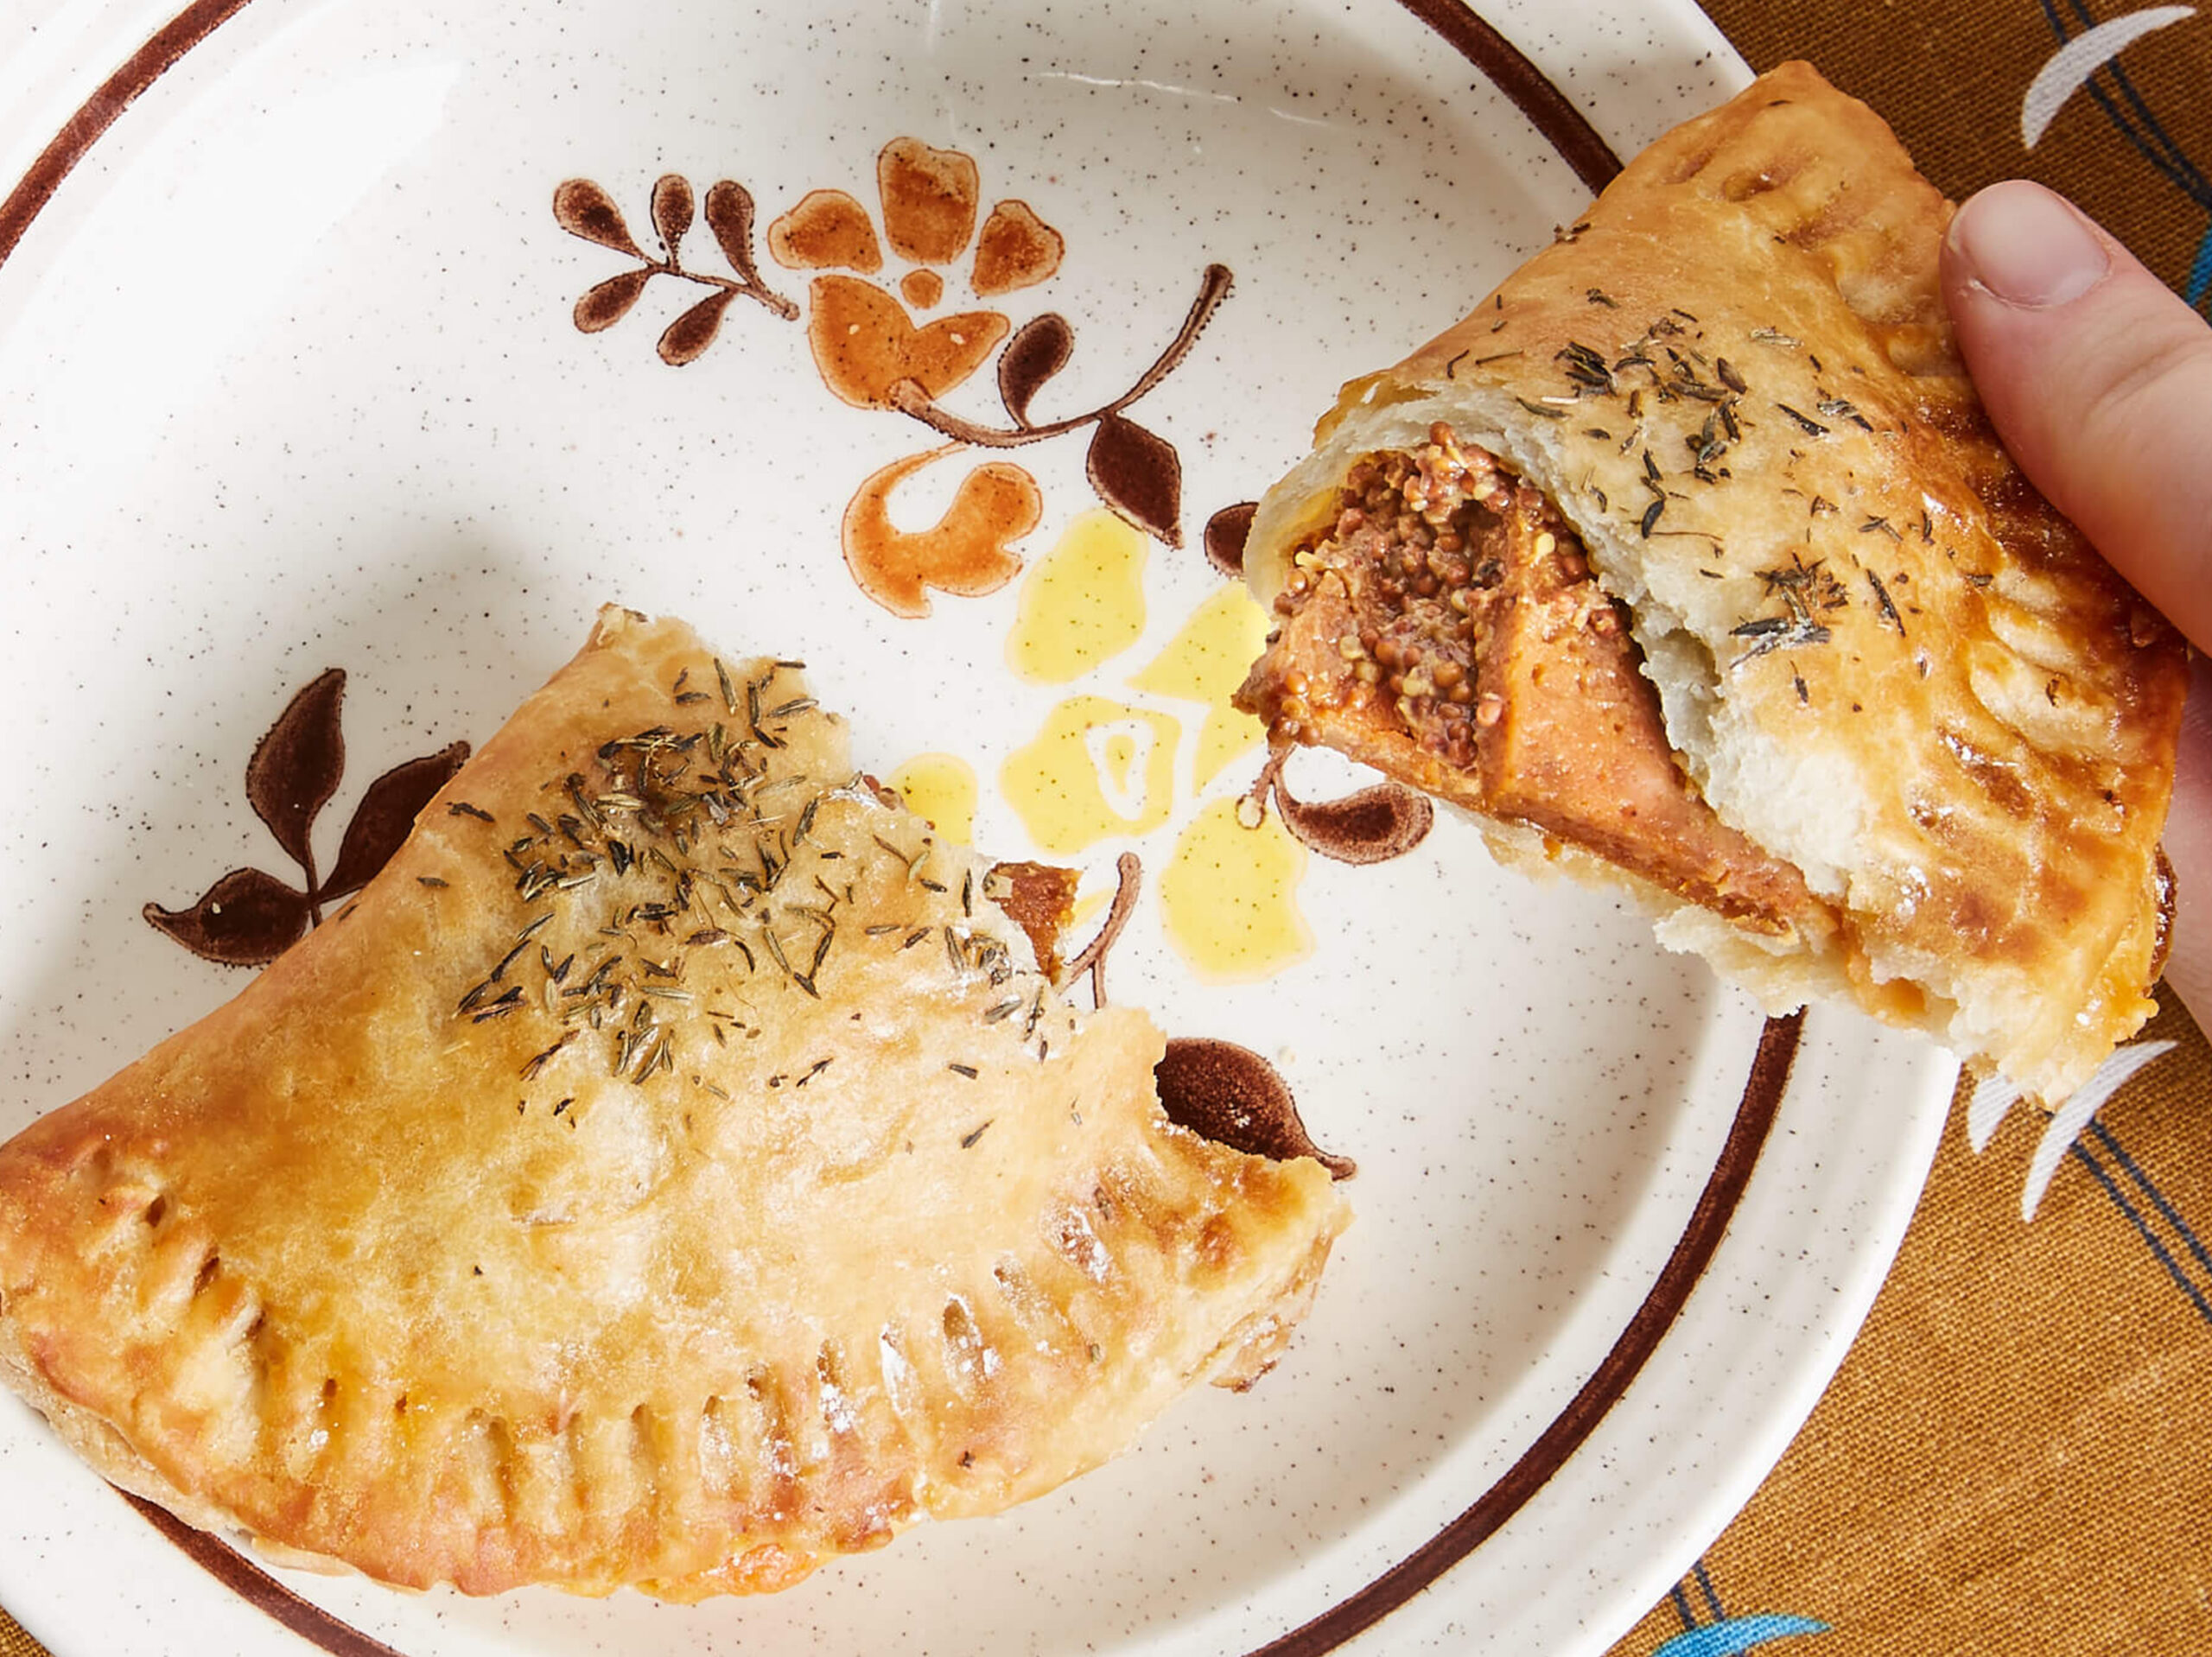 Hyam and Cheddar Handpie | Shoofly Vegan Bakery